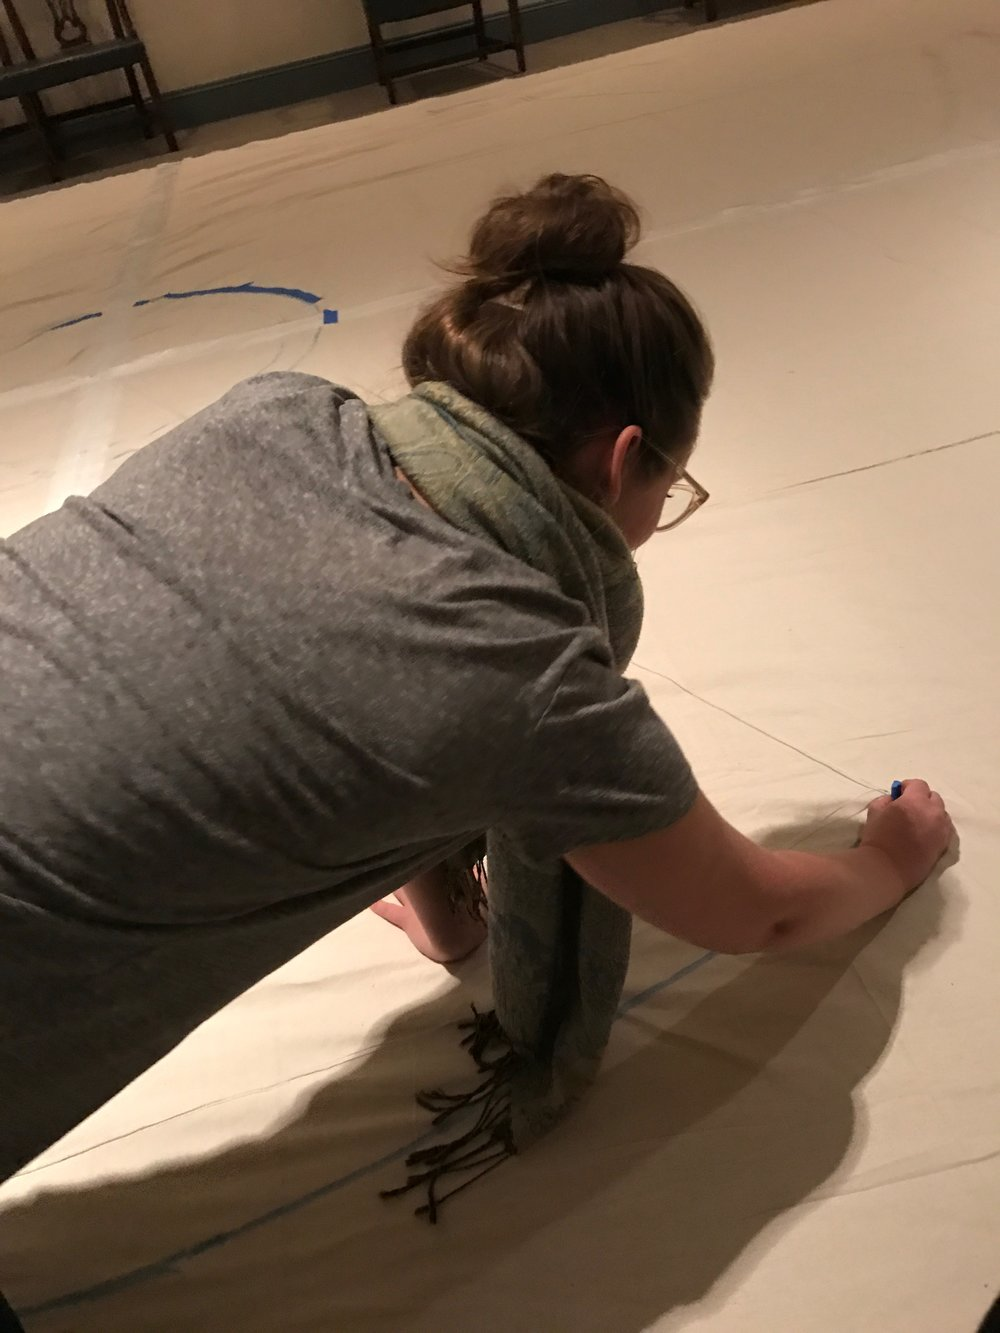 Creating a Labyrinth during the season of Lent